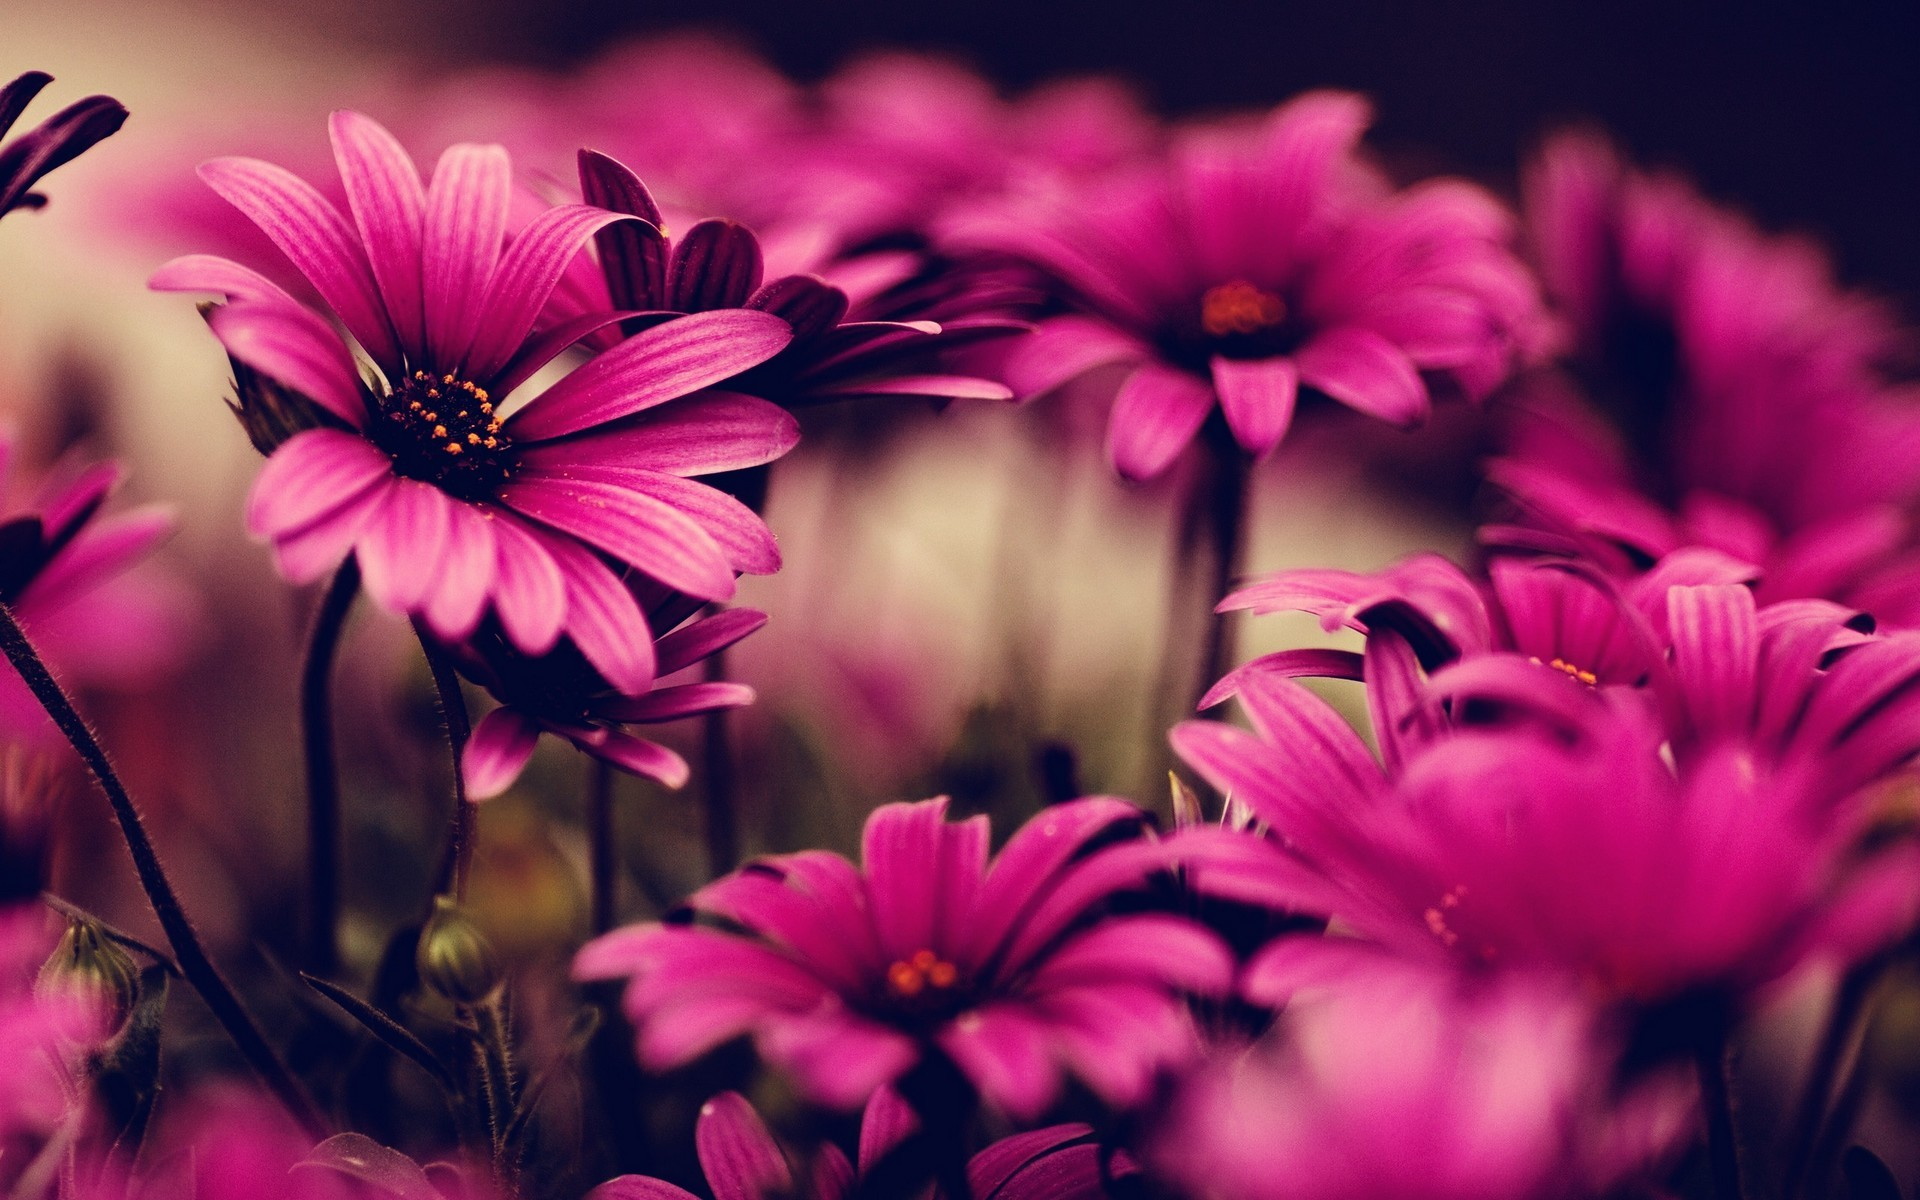 Flower Desktop Backgrounds 183 ①